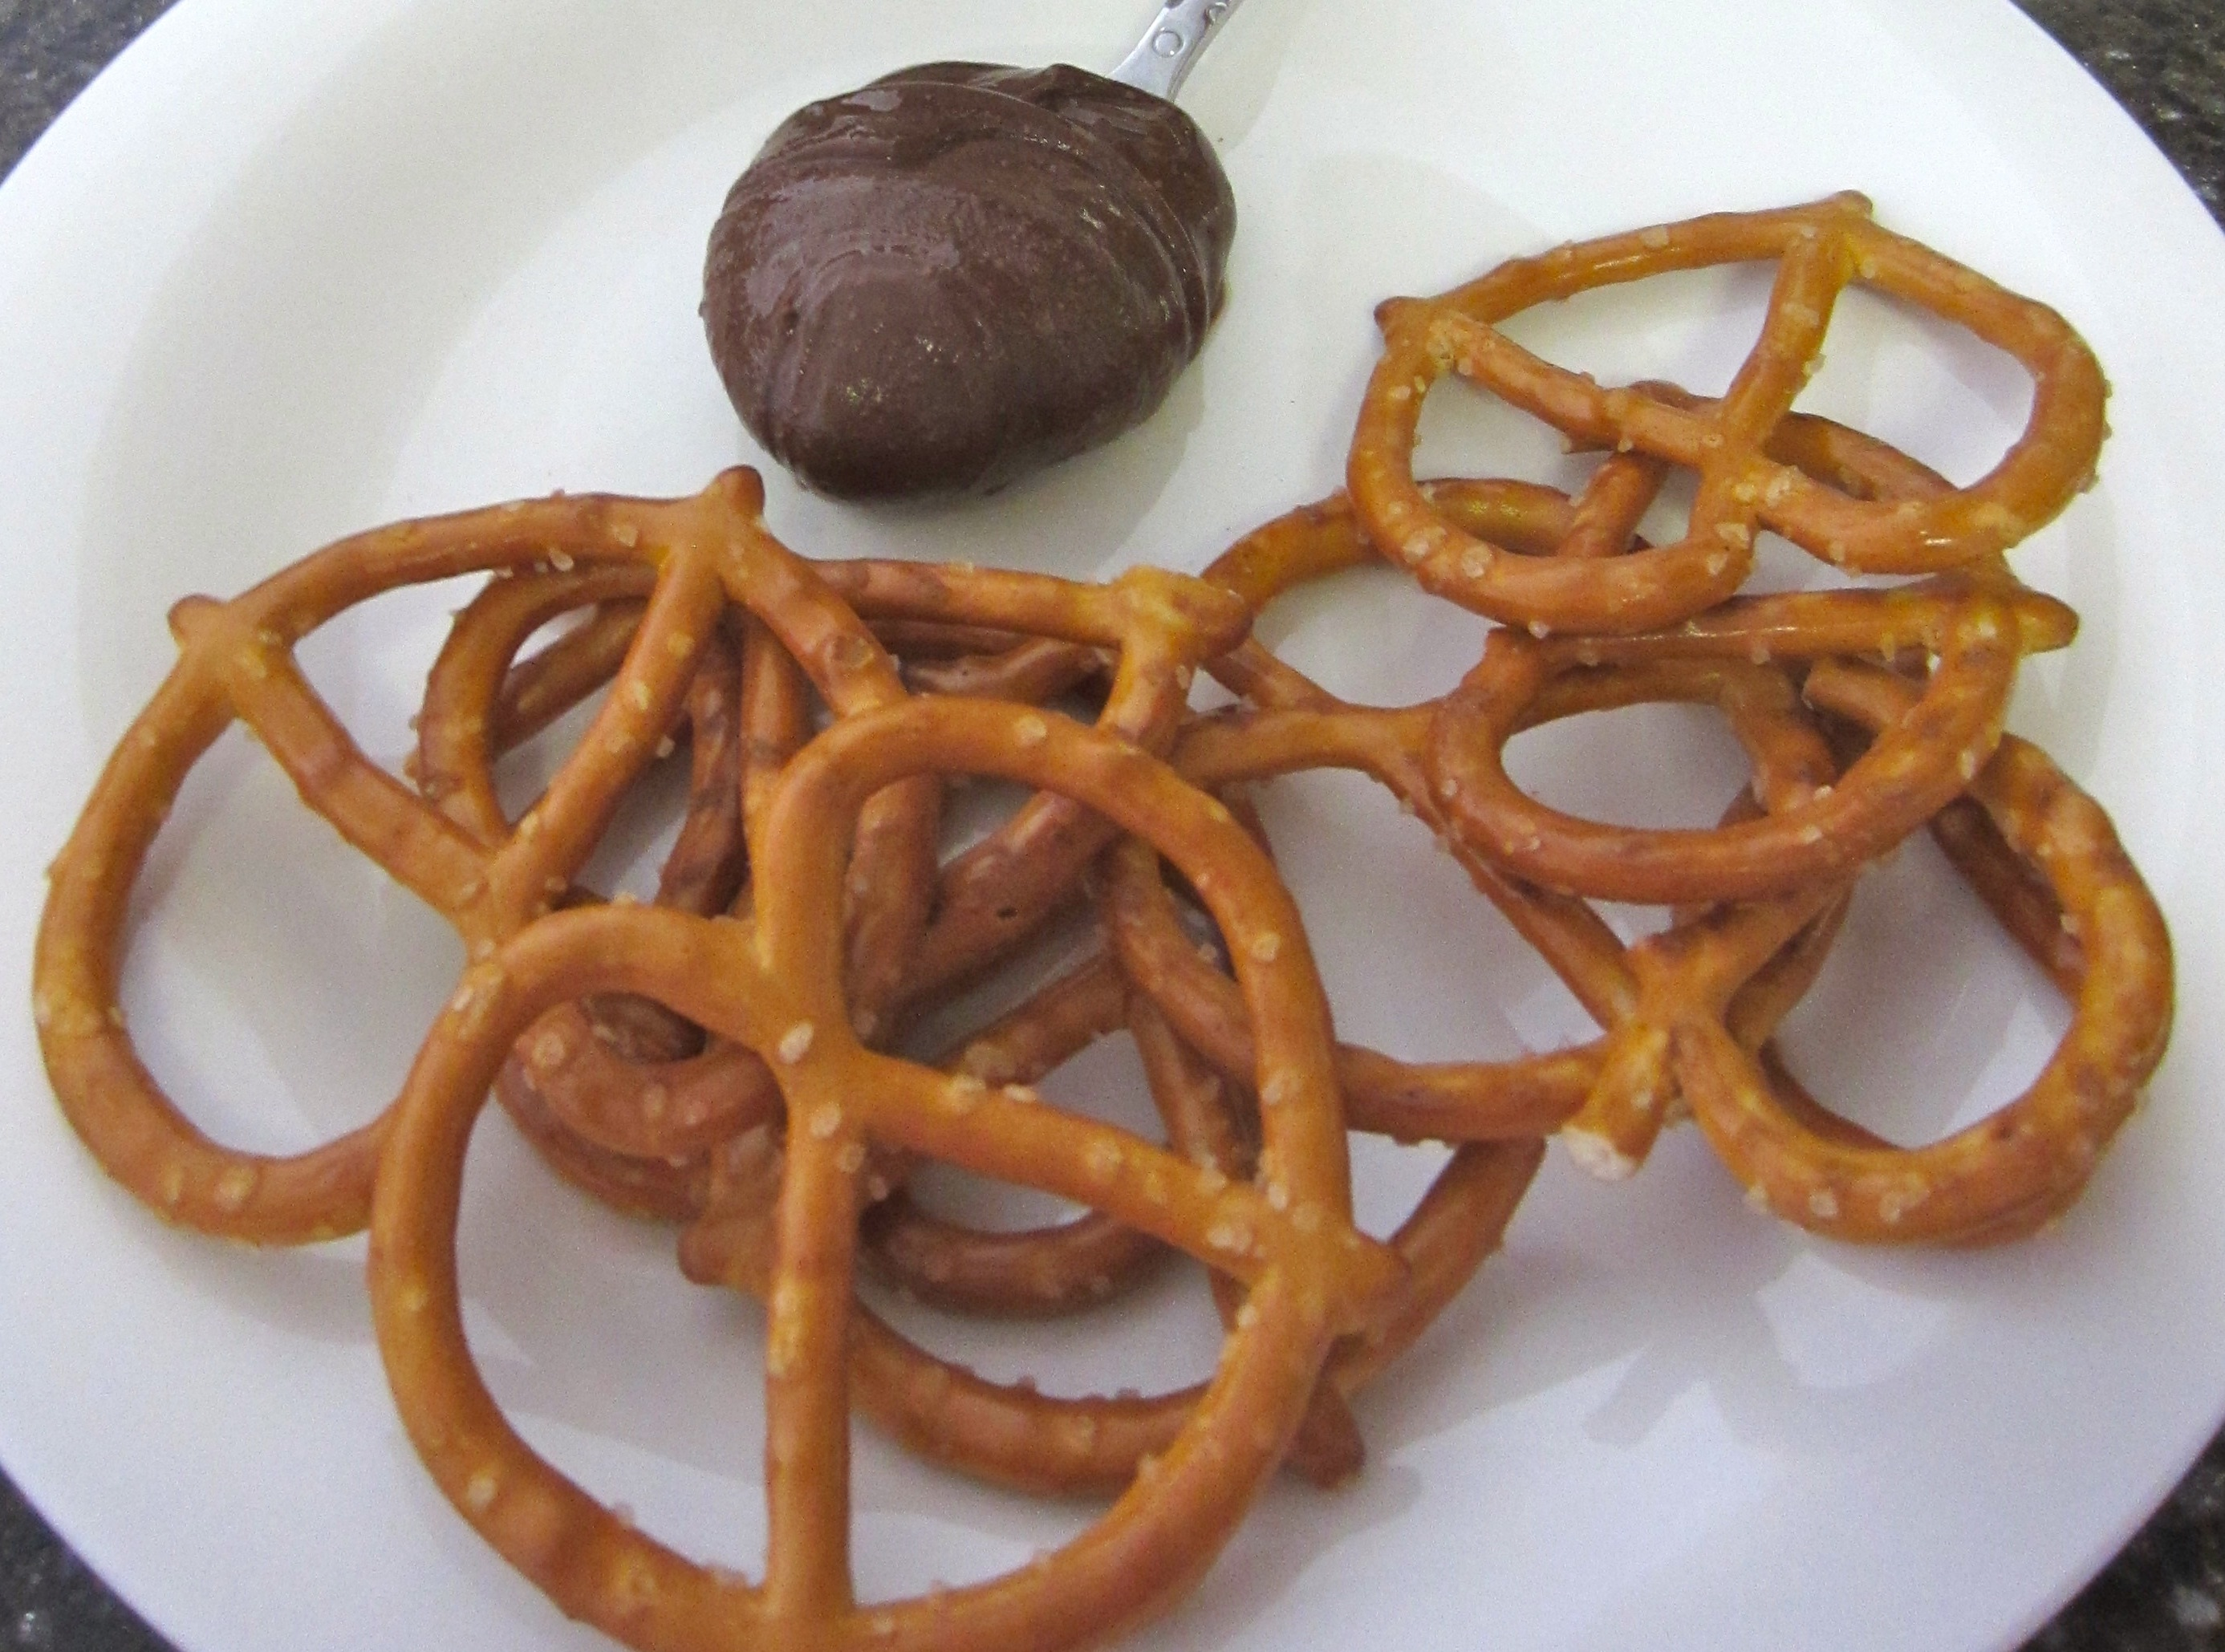 Pretzels and dark chocolate peanut butter